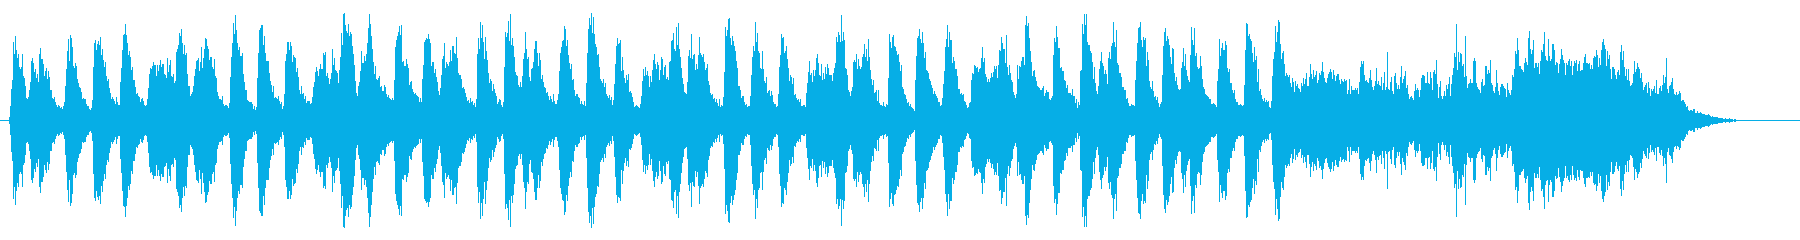 Birthdays celebrated by the little old men's reproduced waveform